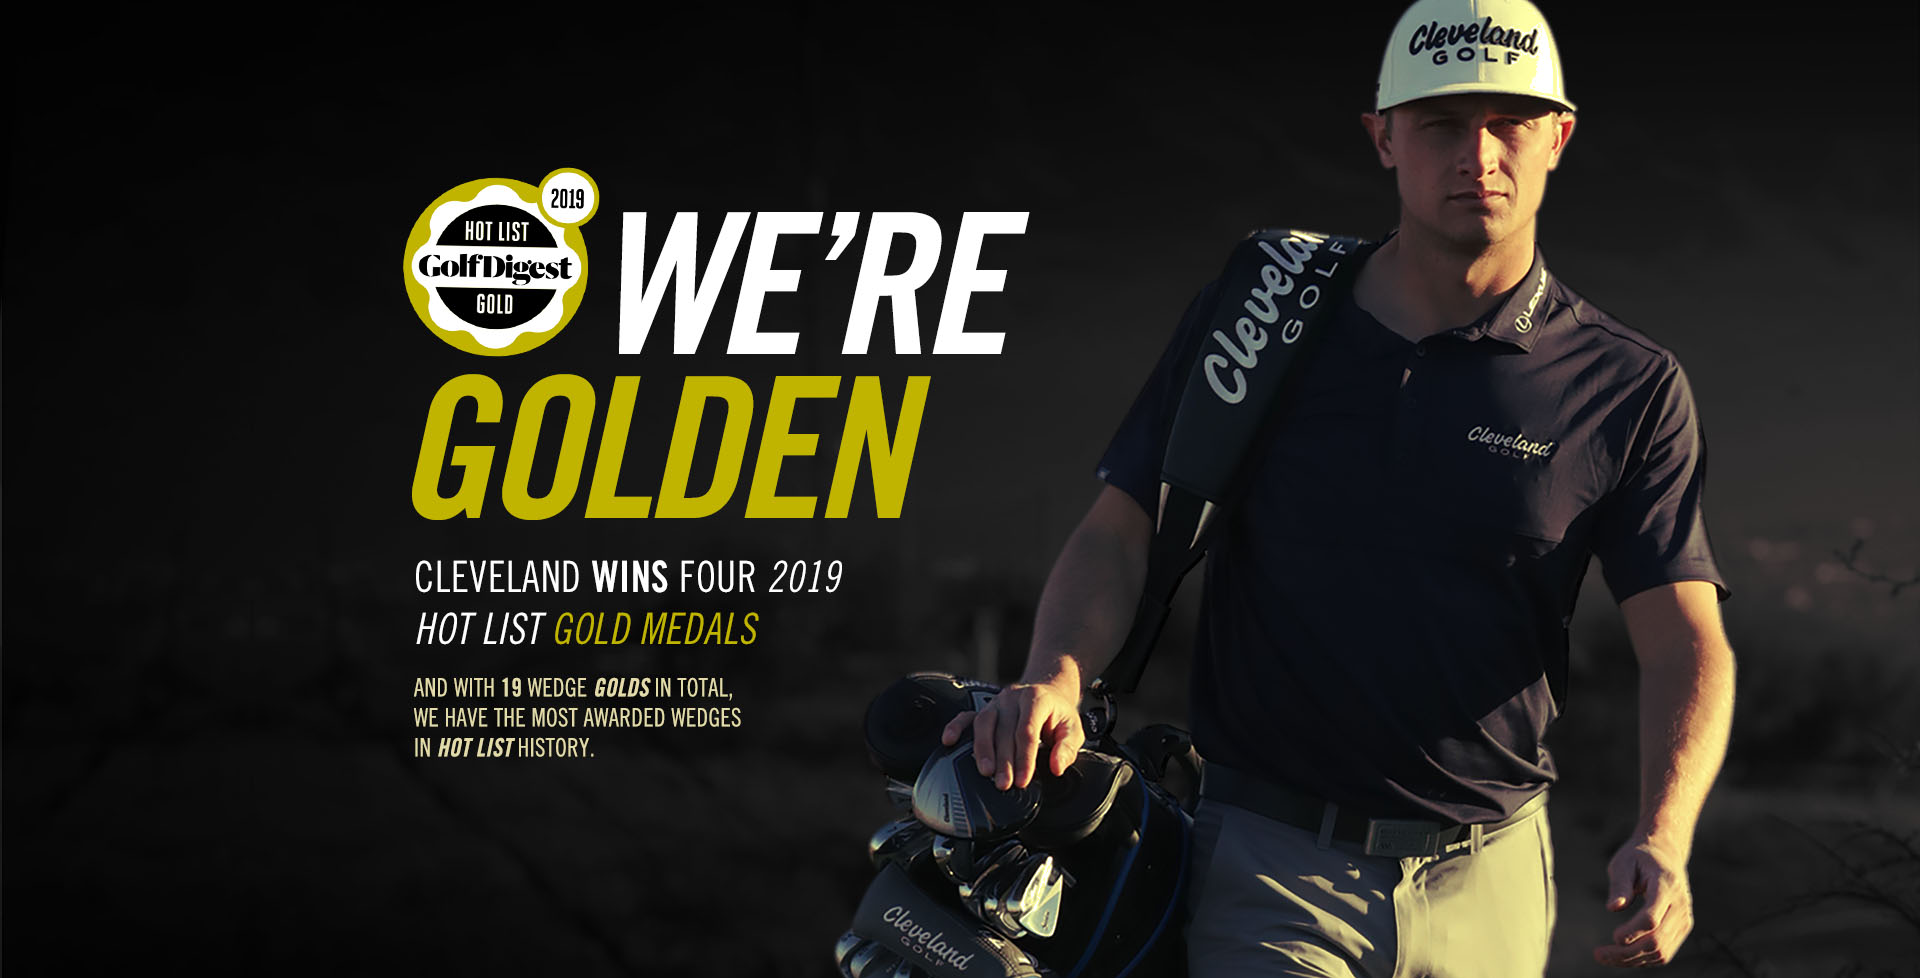 We're Golden, Cleveland Wins Four 2019 Hot List Gold Medals